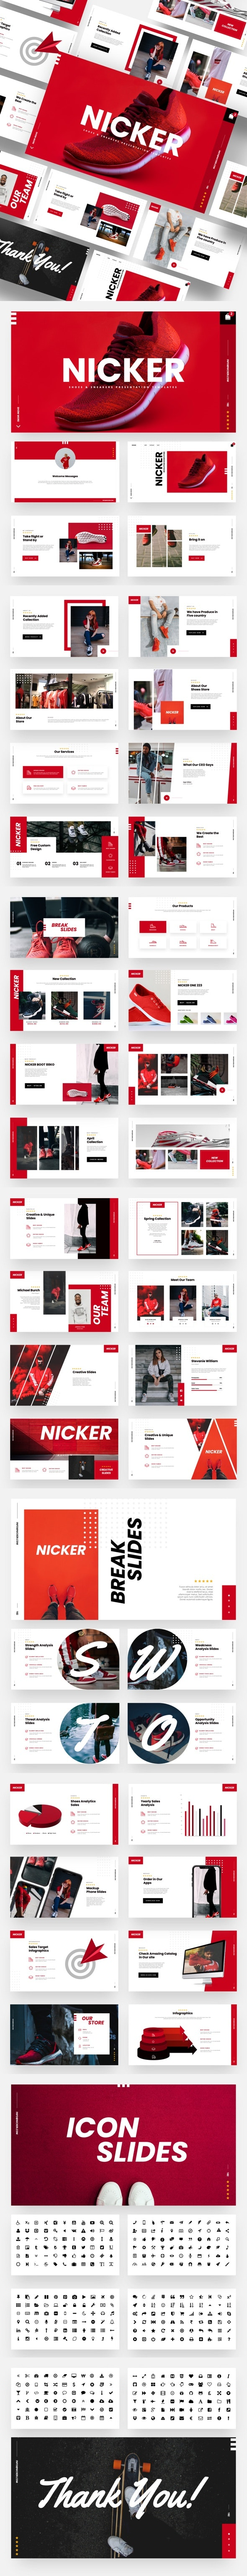 Nicker - Shoes & Sneakers Powerpoint Template - Business PowerPoint Templates